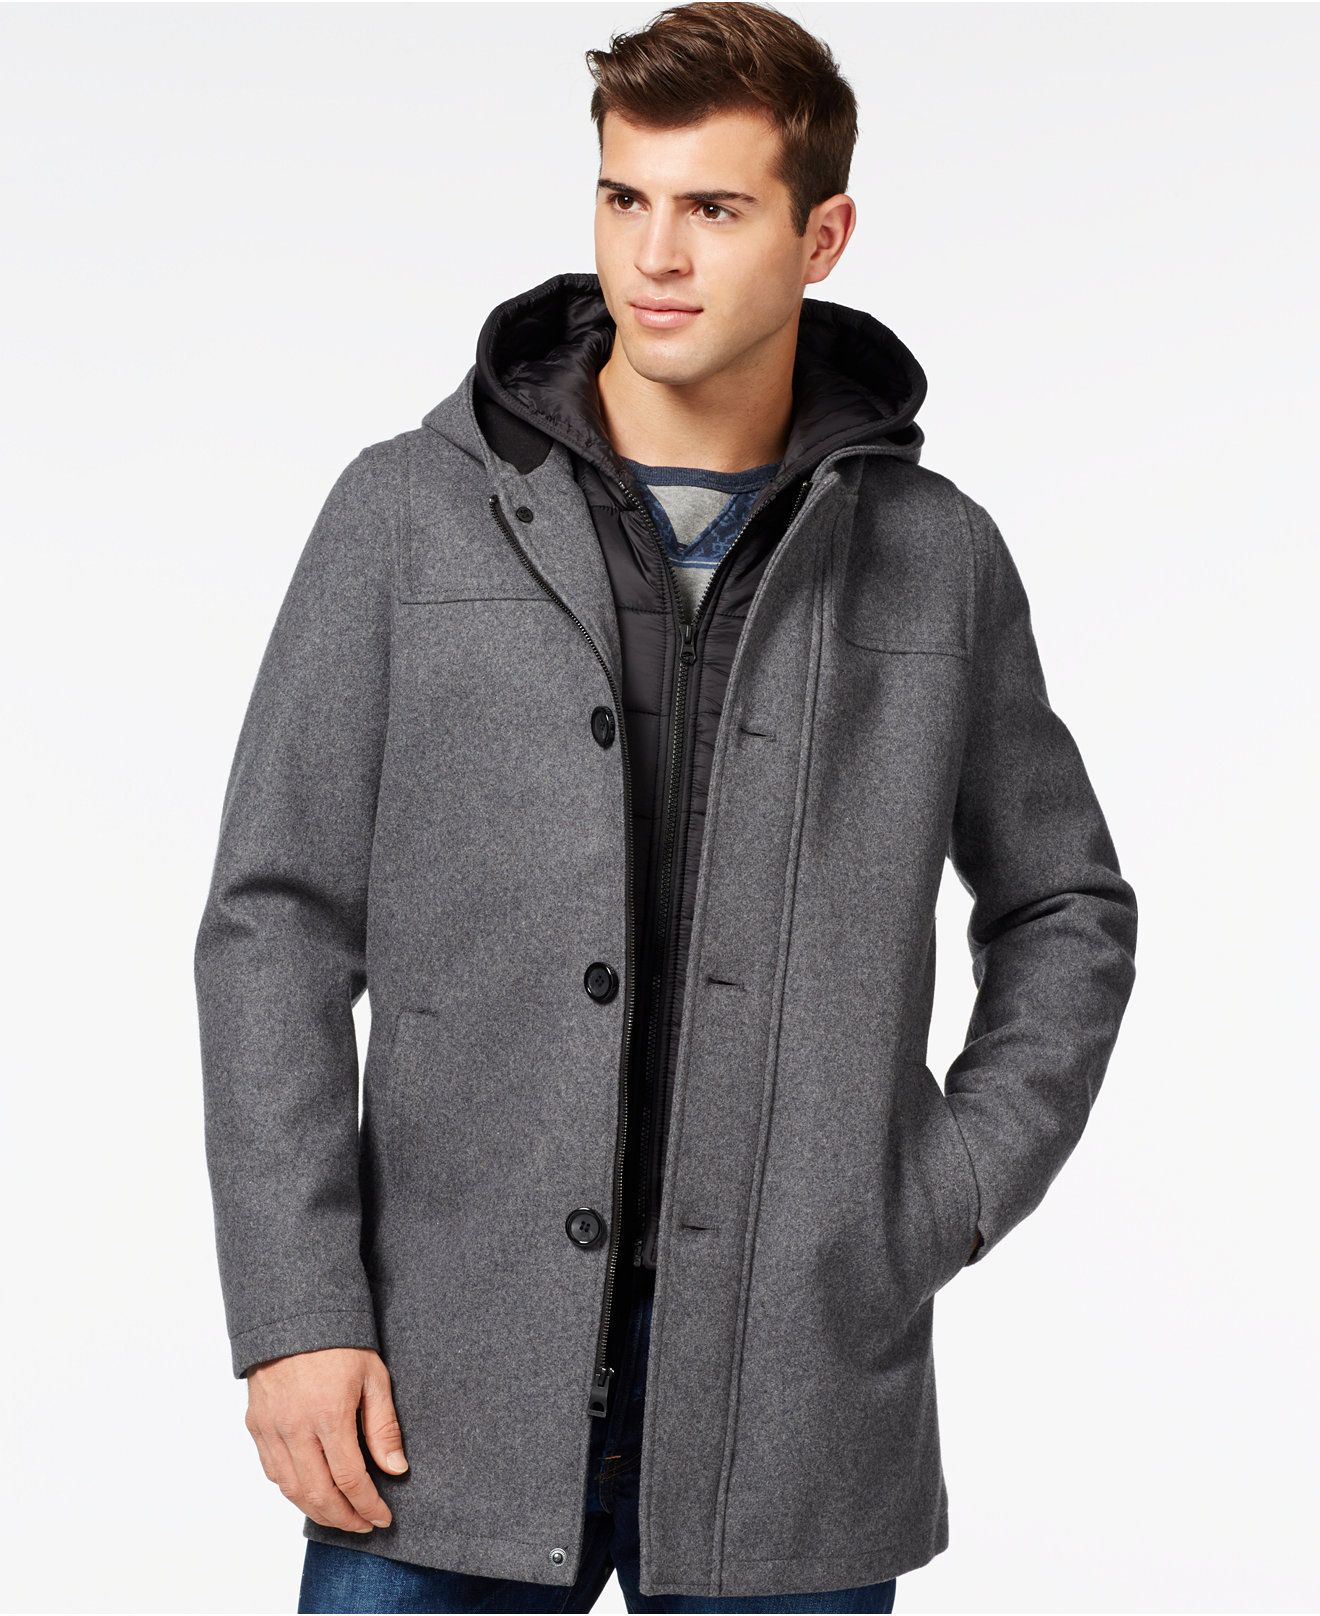 Guess Toggle Jacket With Attached Hood Coats Jackets Men Macy S Jackets Mens Jackets Mens Outfits [ 1616 x 1320 Pixel ]